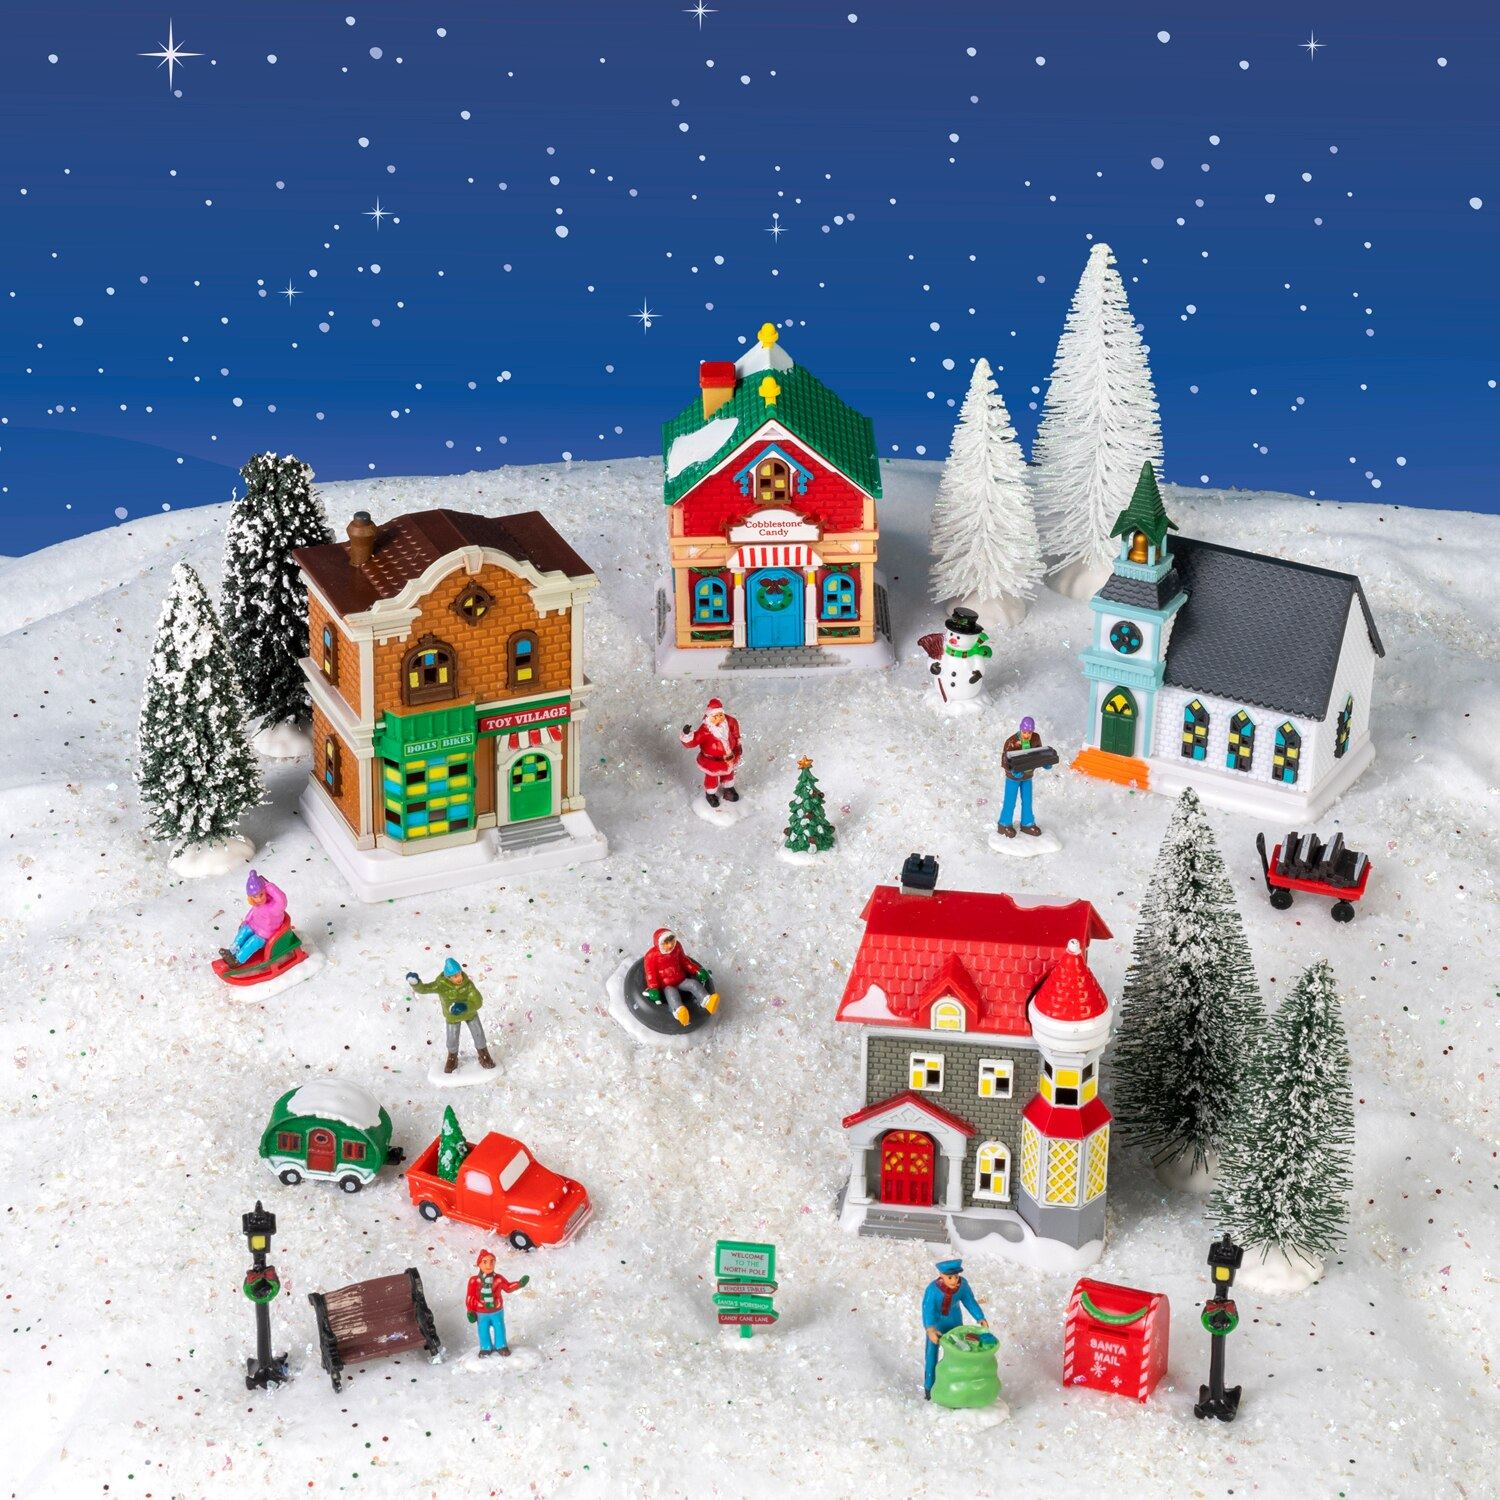 28-Piece Christmas Village Col...